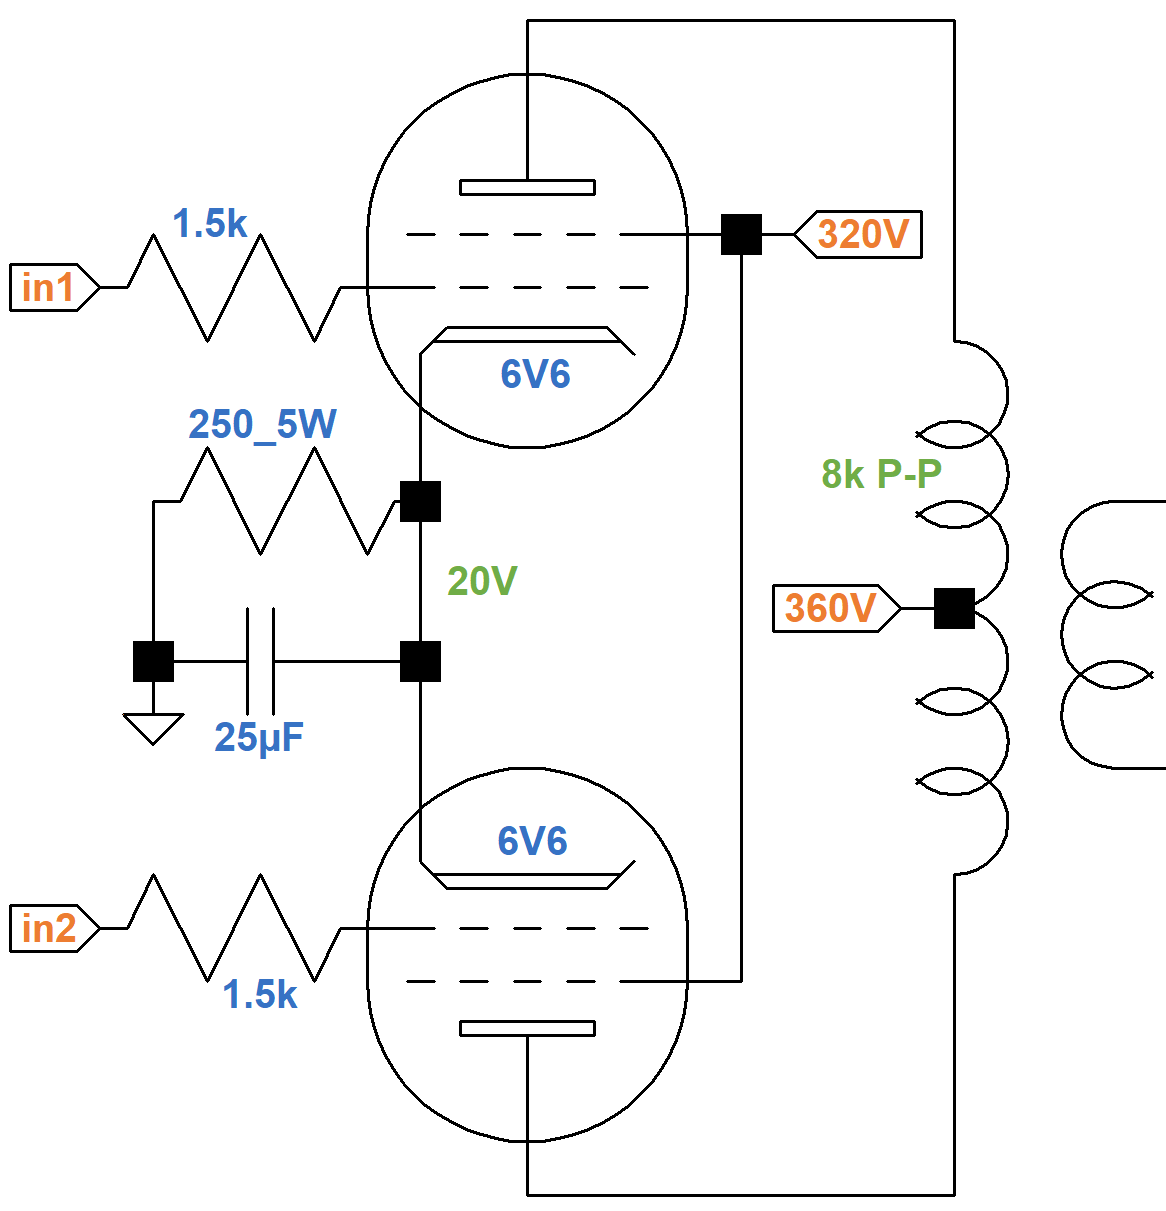 Fender Deluxe 5E3 Circuit Analysis